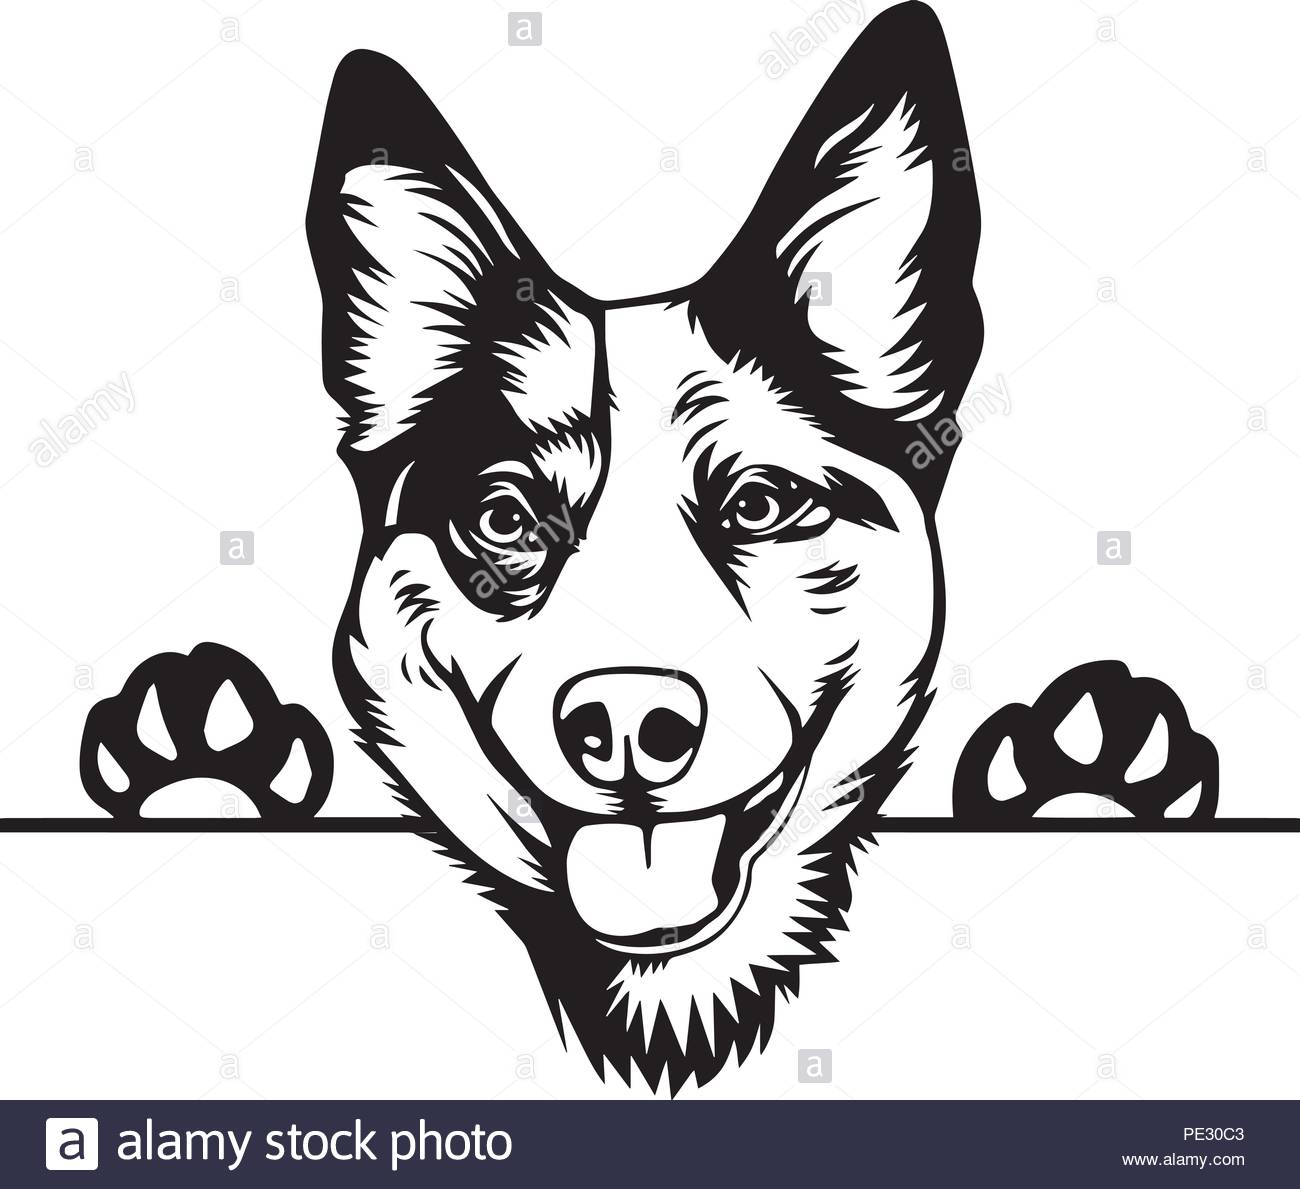 Australian Cattle Dog Breed Pet Puppy Isolated Head Face Stock.